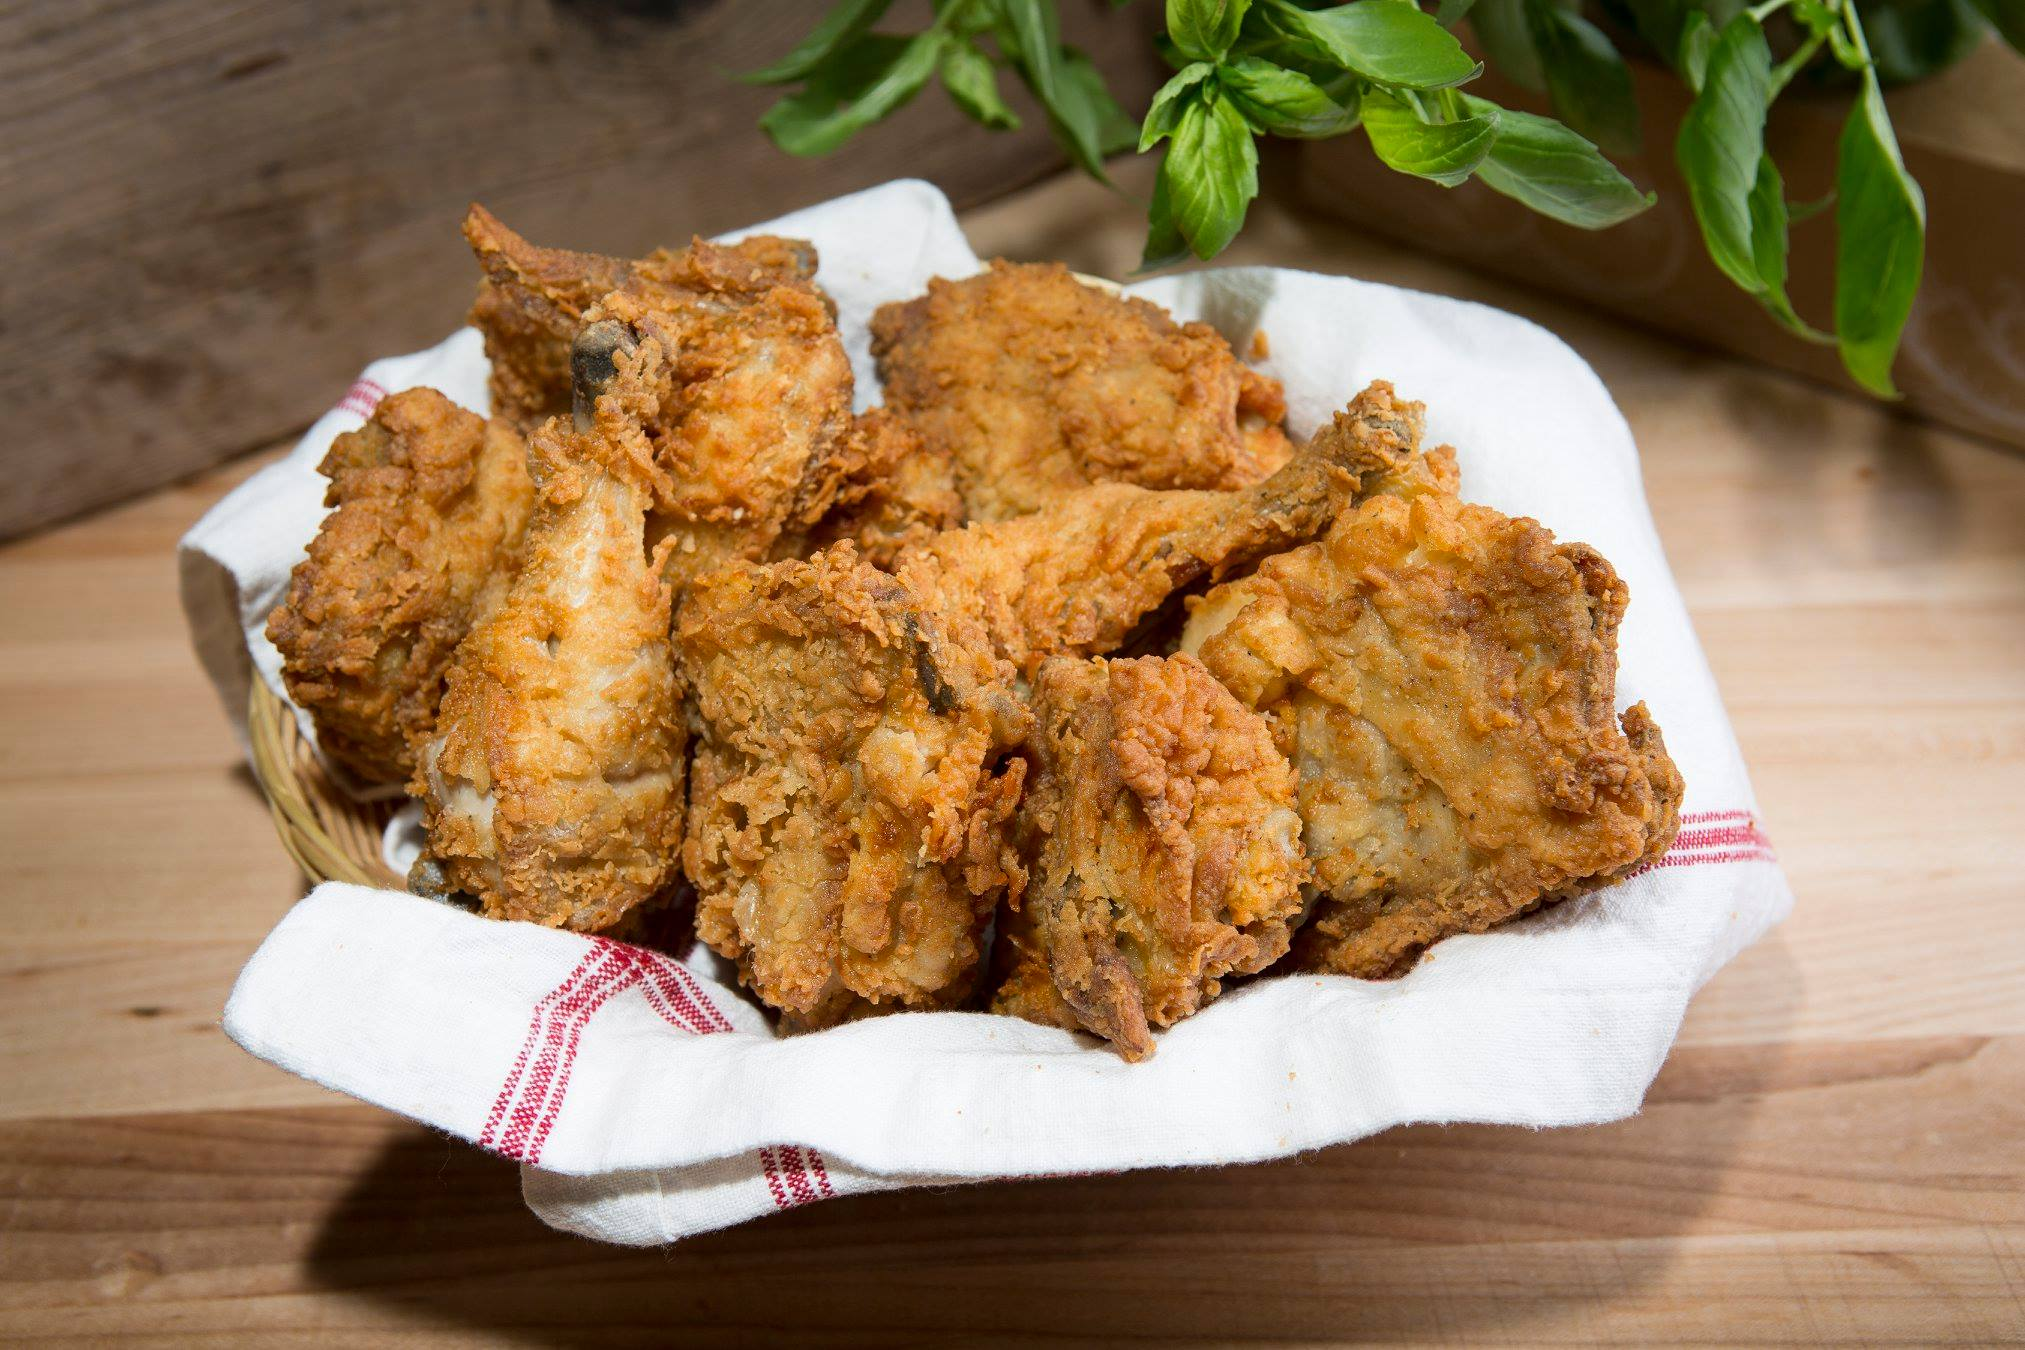 A basket of fried chicken with a white clothe underneath